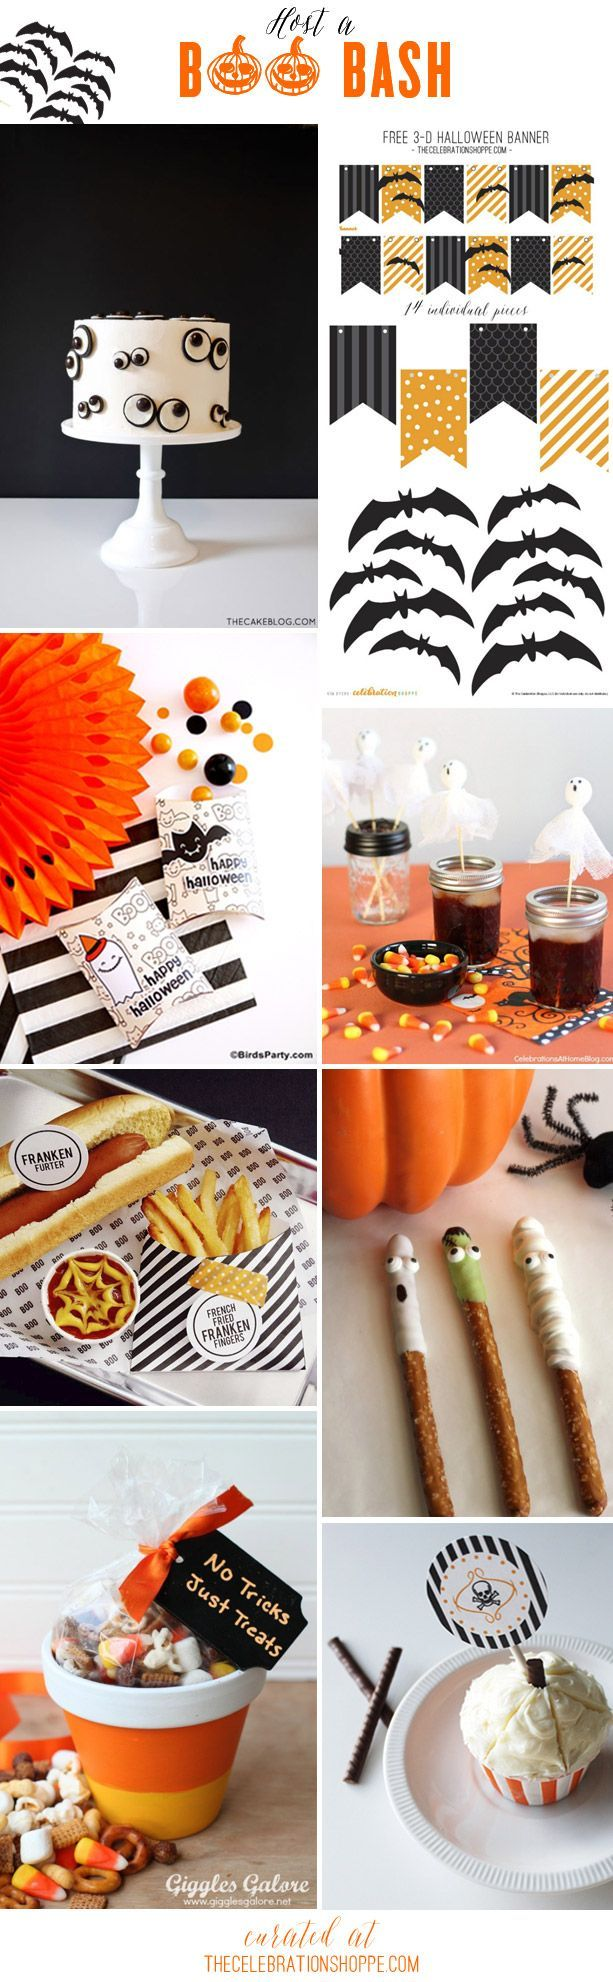 786 best Halloween #food #crafts #decorating and more images on ...